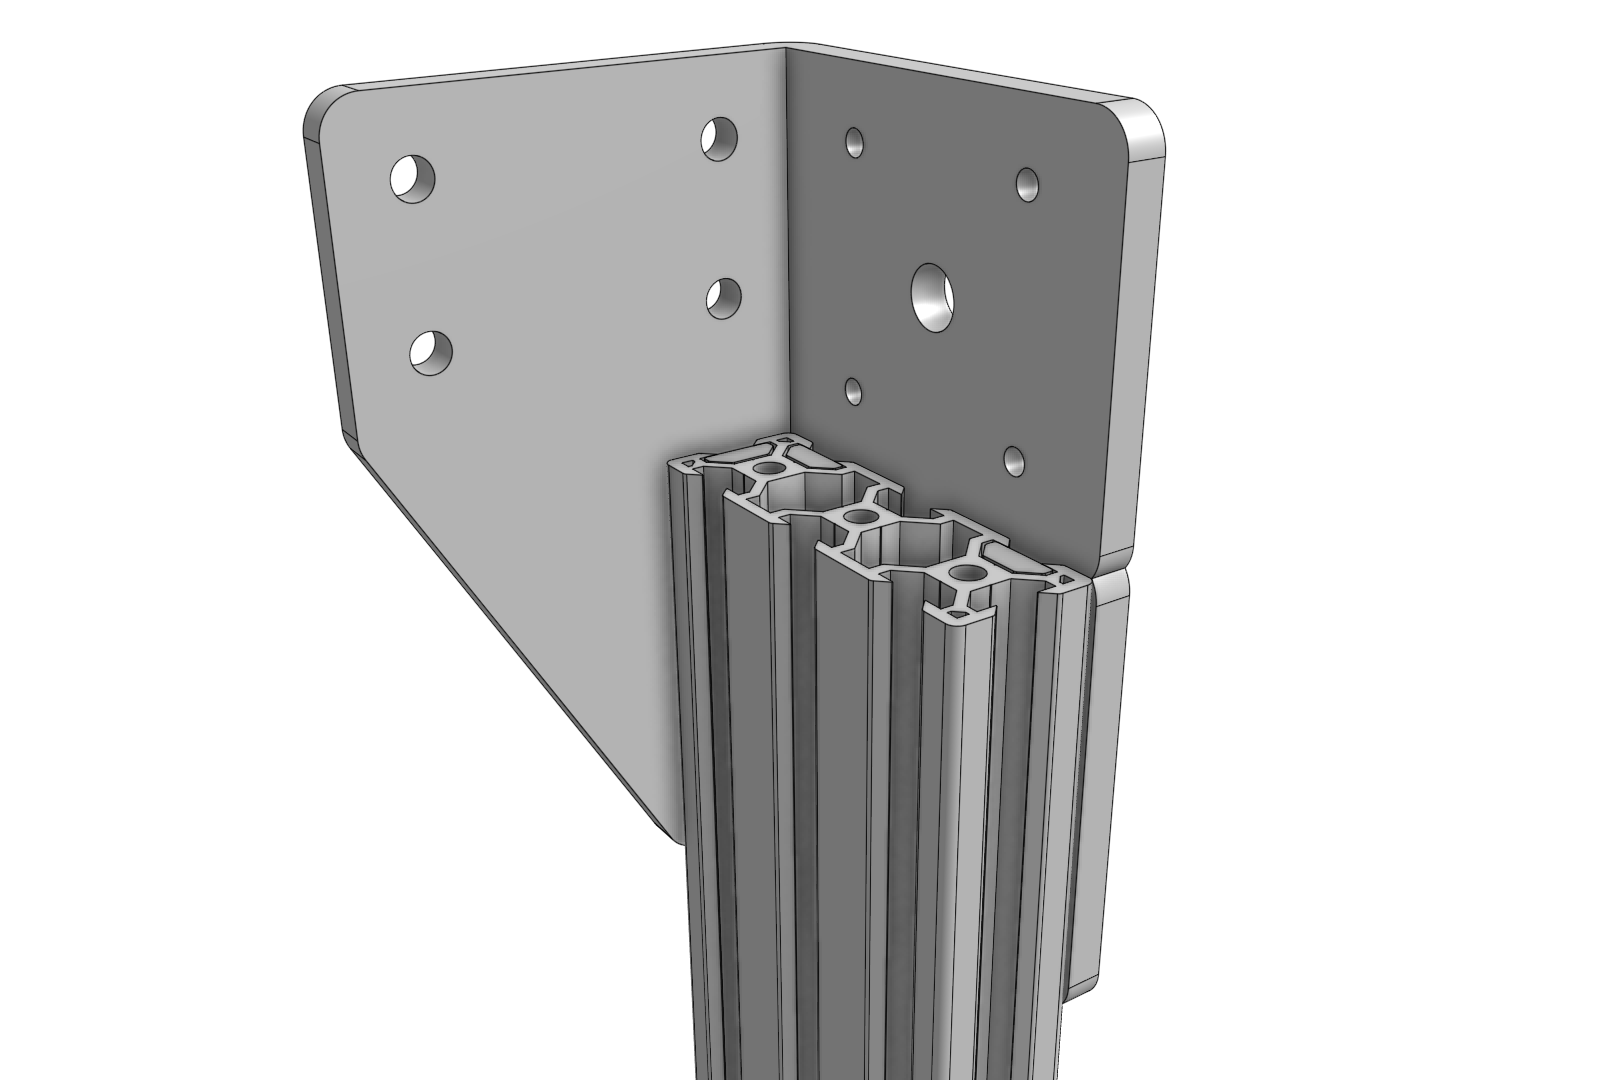 Align the top of the extrusion with the bracket notch